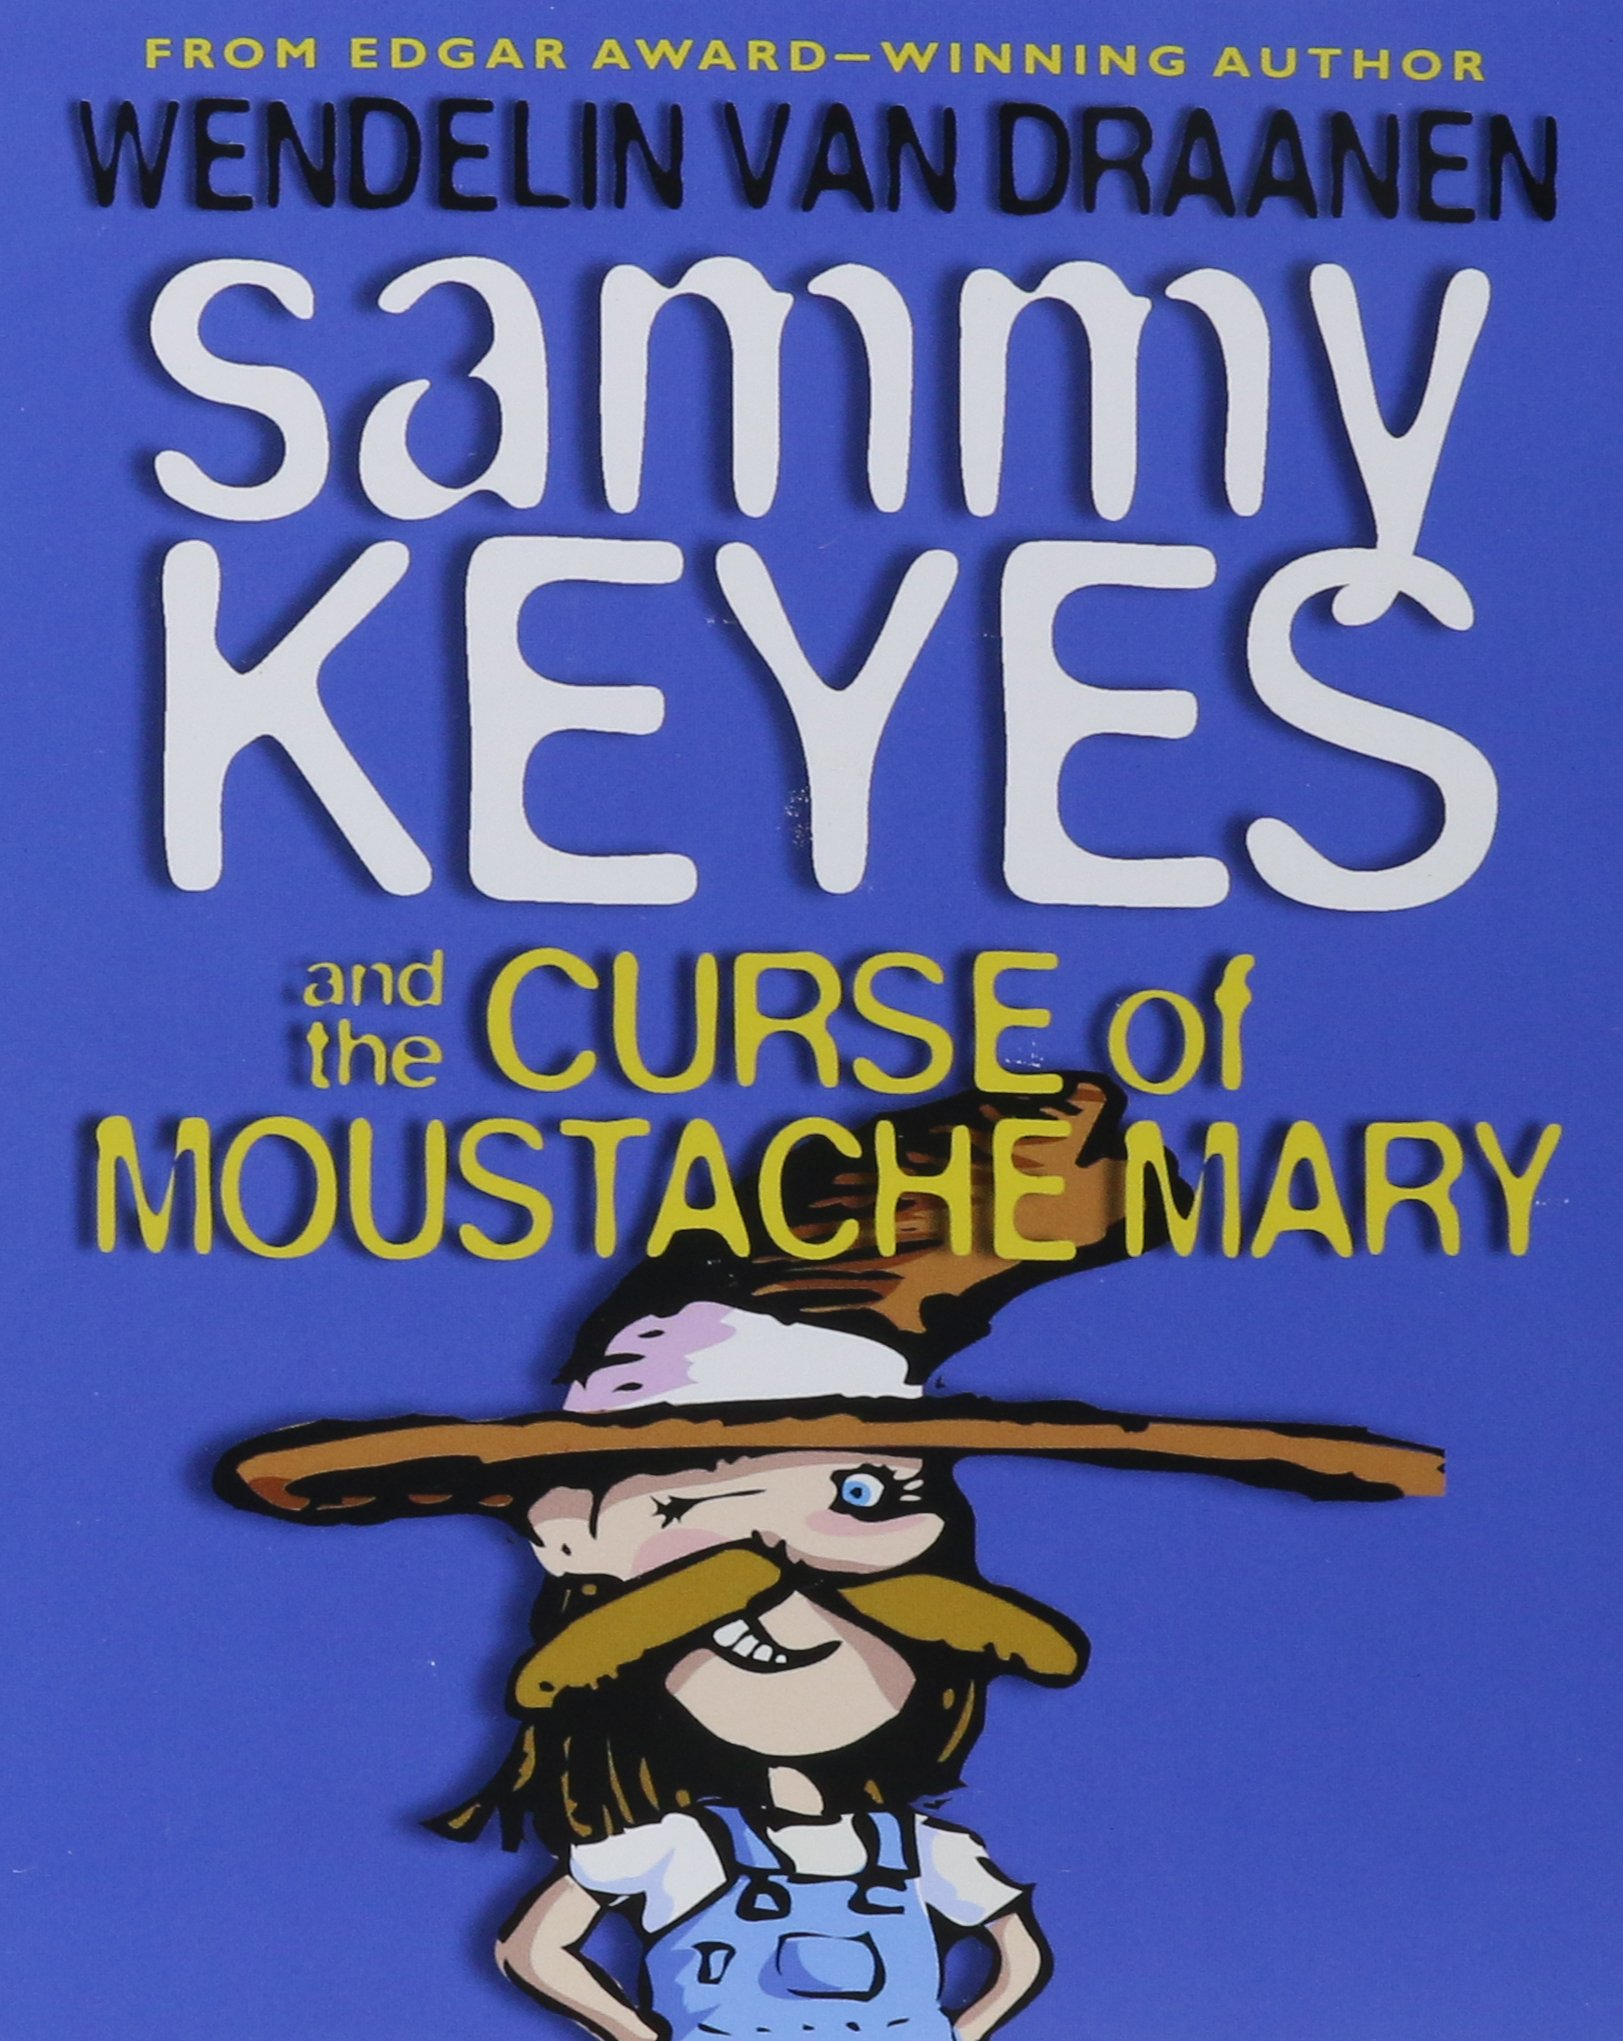 Sammy Keyes and the Curse of Moustache Mary (1 Paperback/5 CD Set) PDF